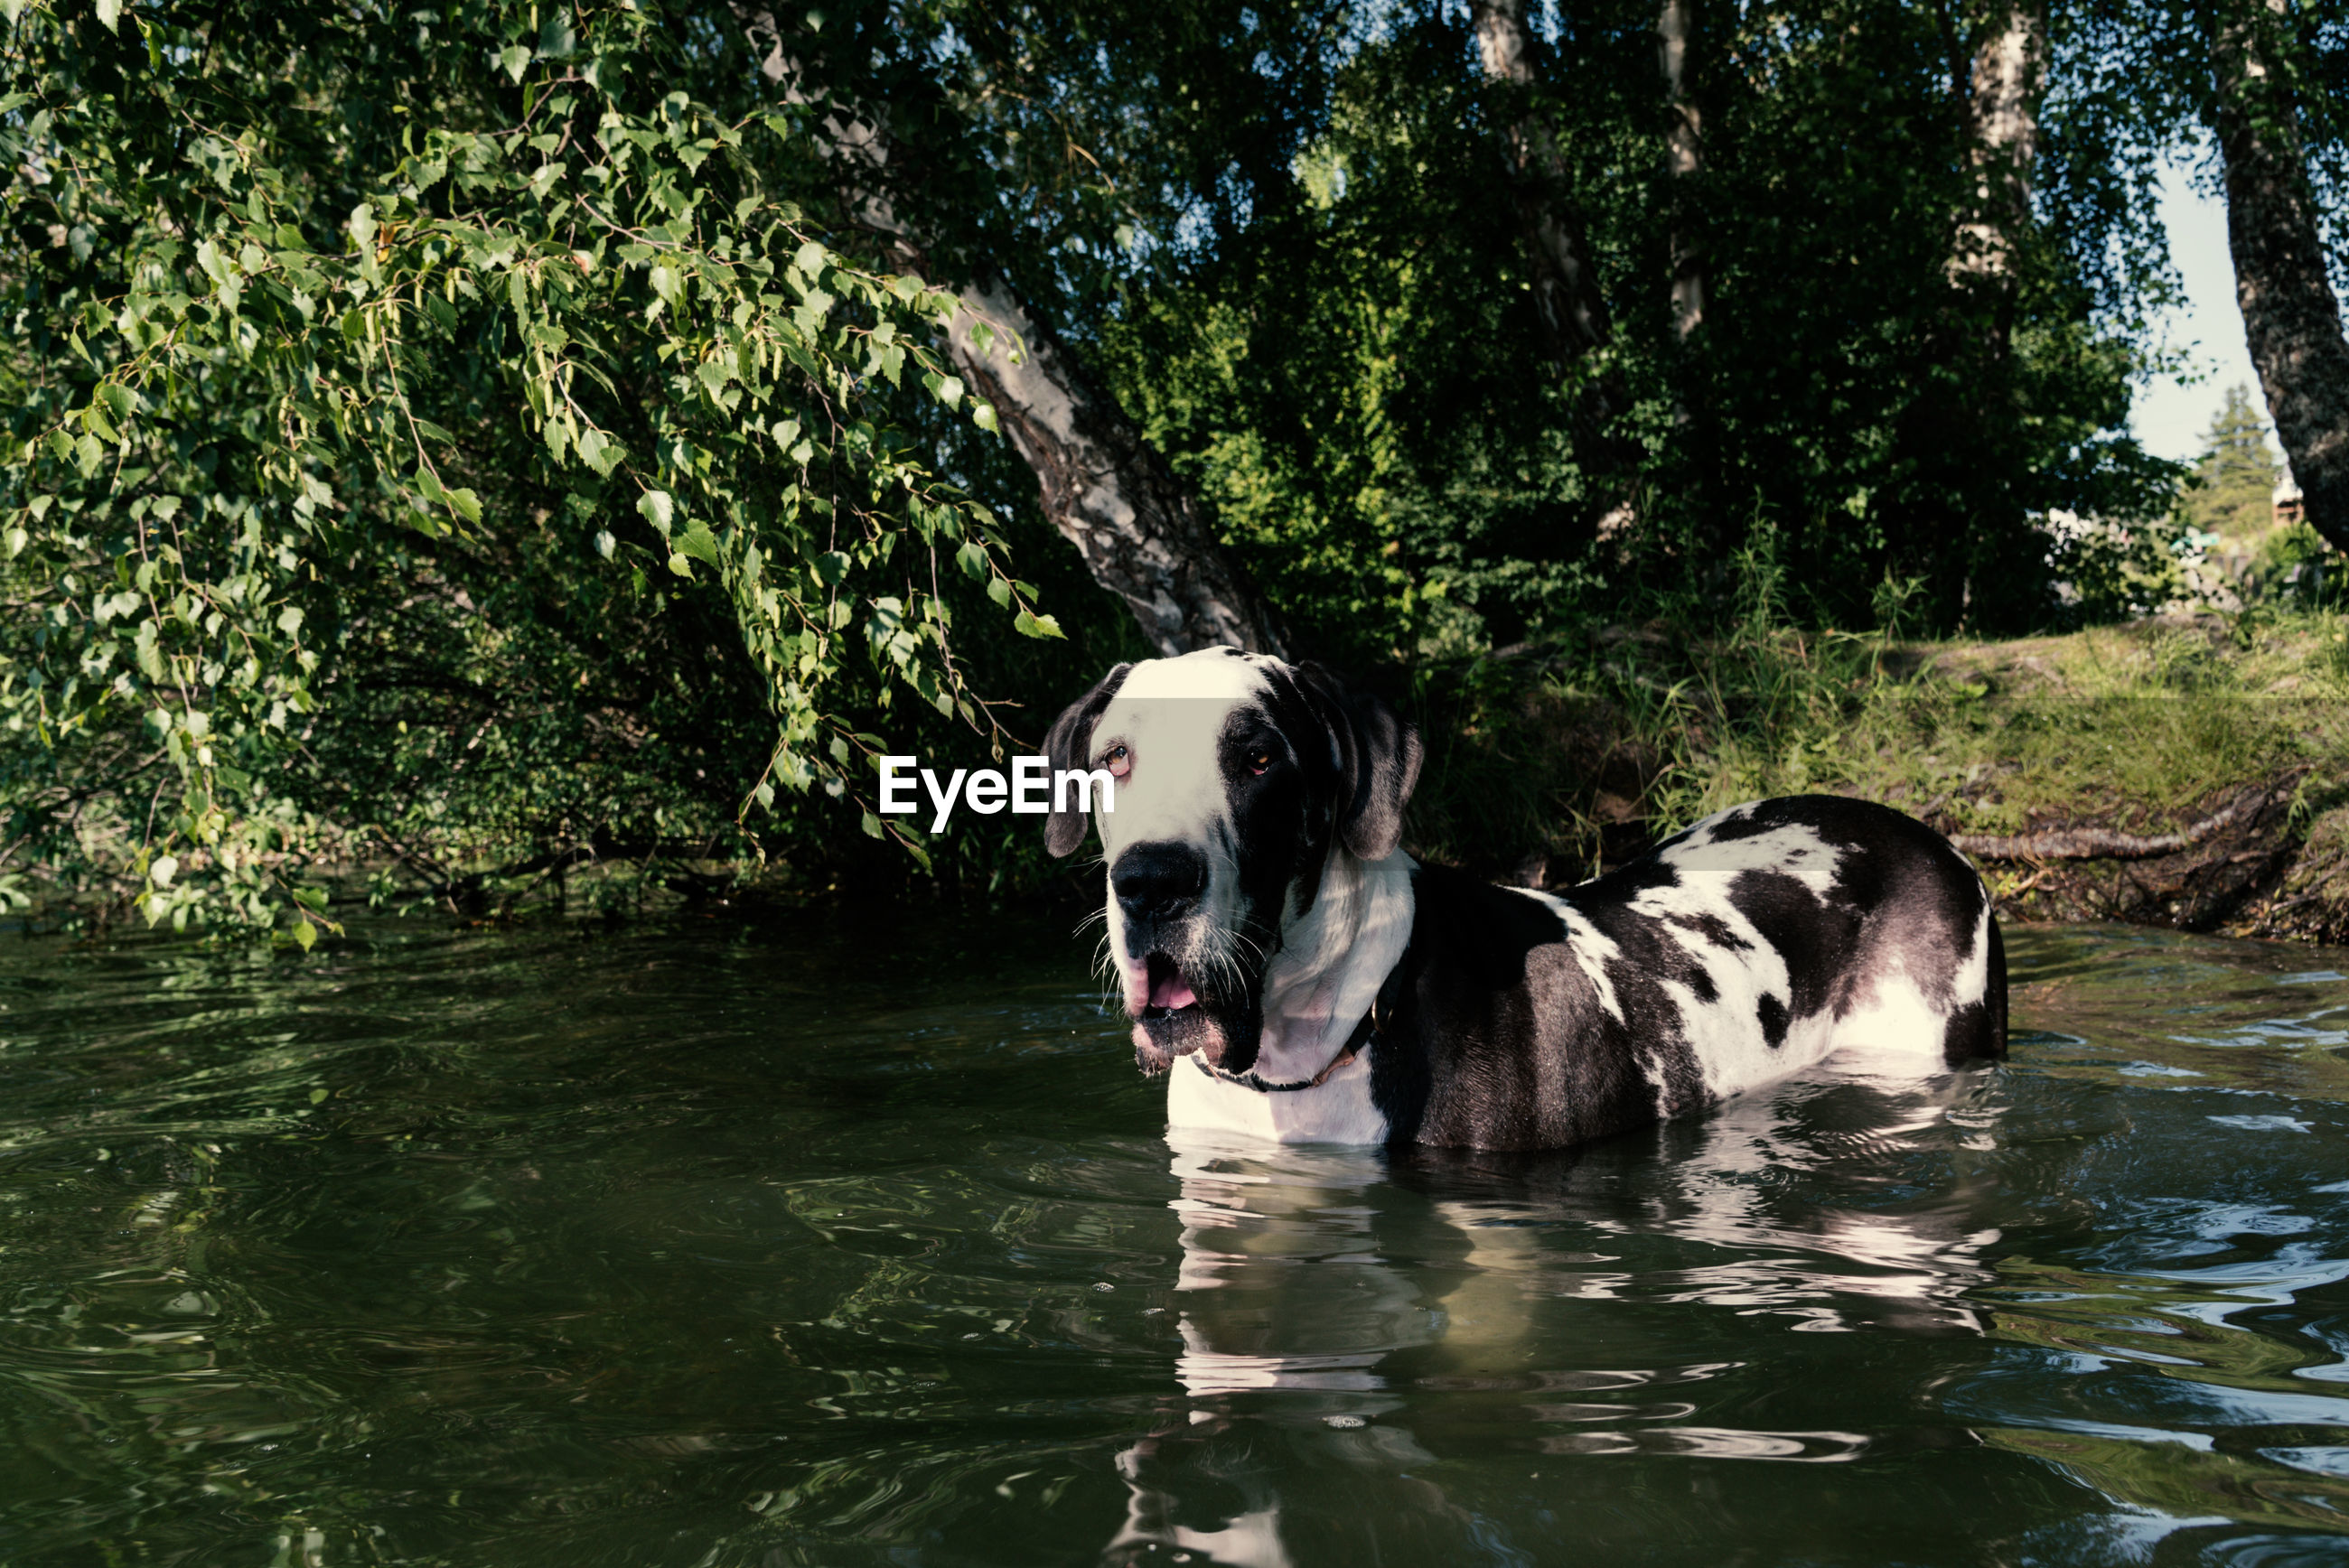 Harlequin great dane dog learning to swim at a summer lake in afternoon sun, wading out from shore.